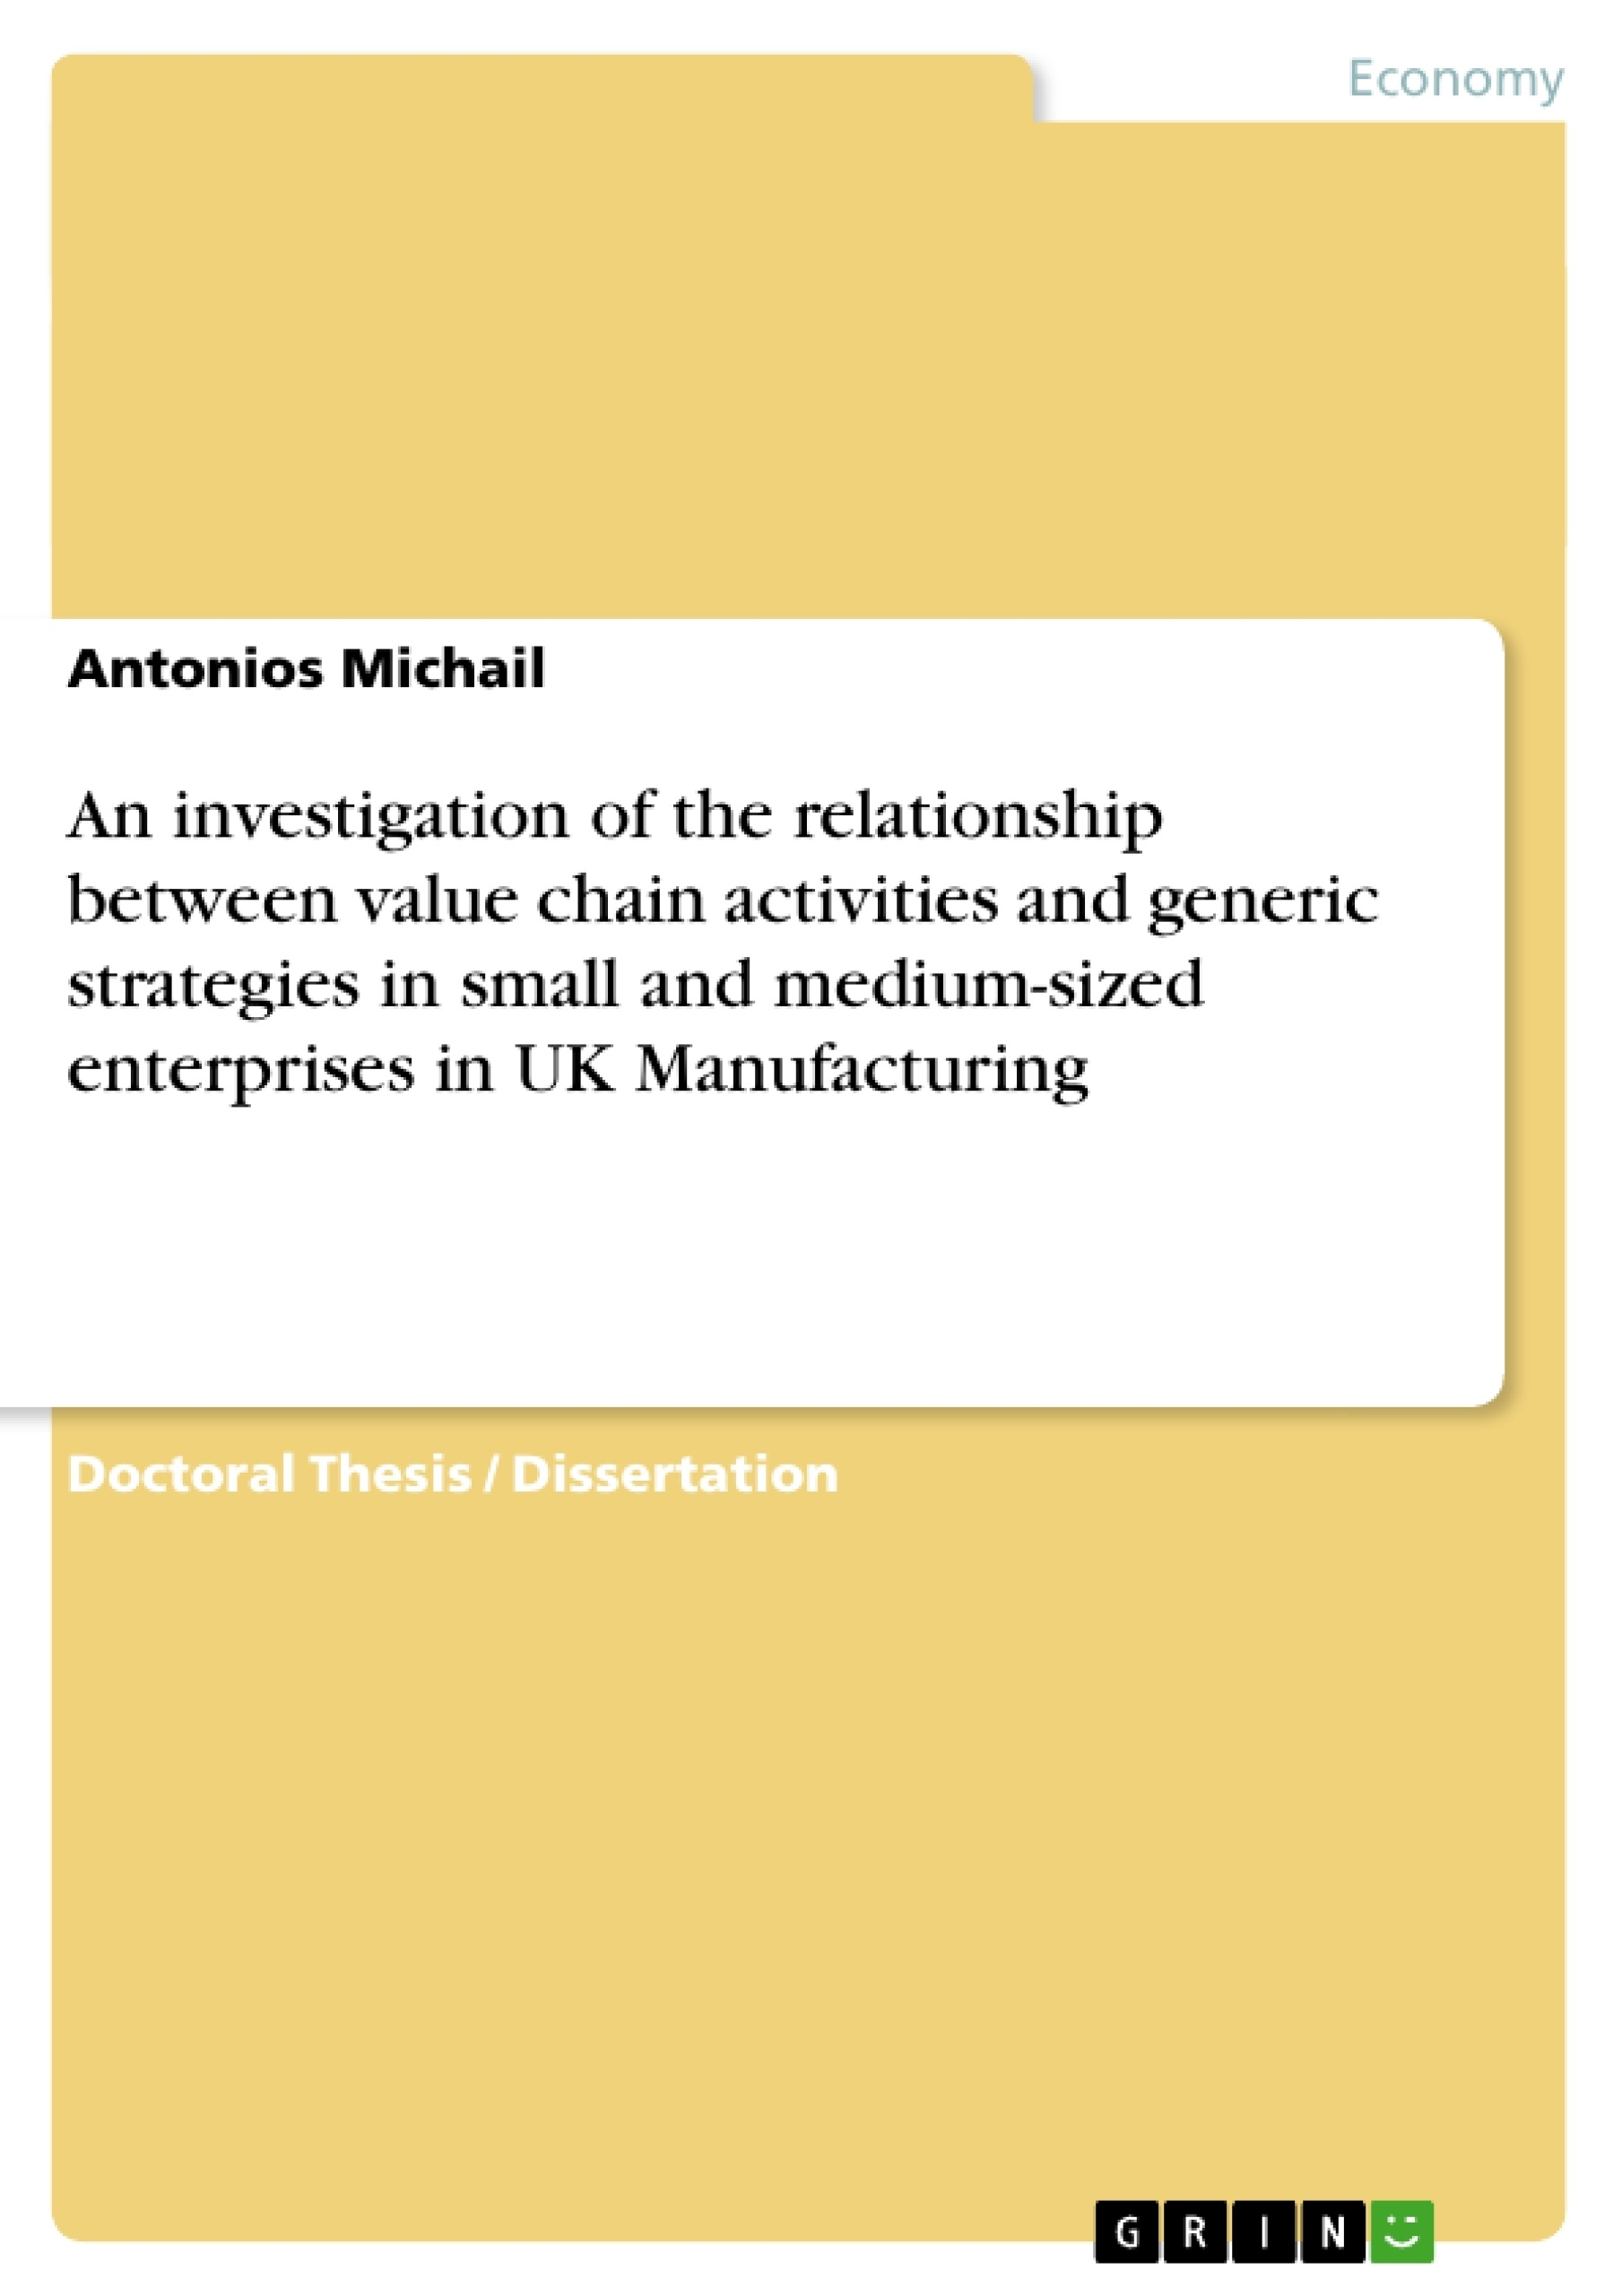 Title: An investigation of the relationship between value chain activities and generic strategies in small and medium-sized enterprises in UK Manufacturing